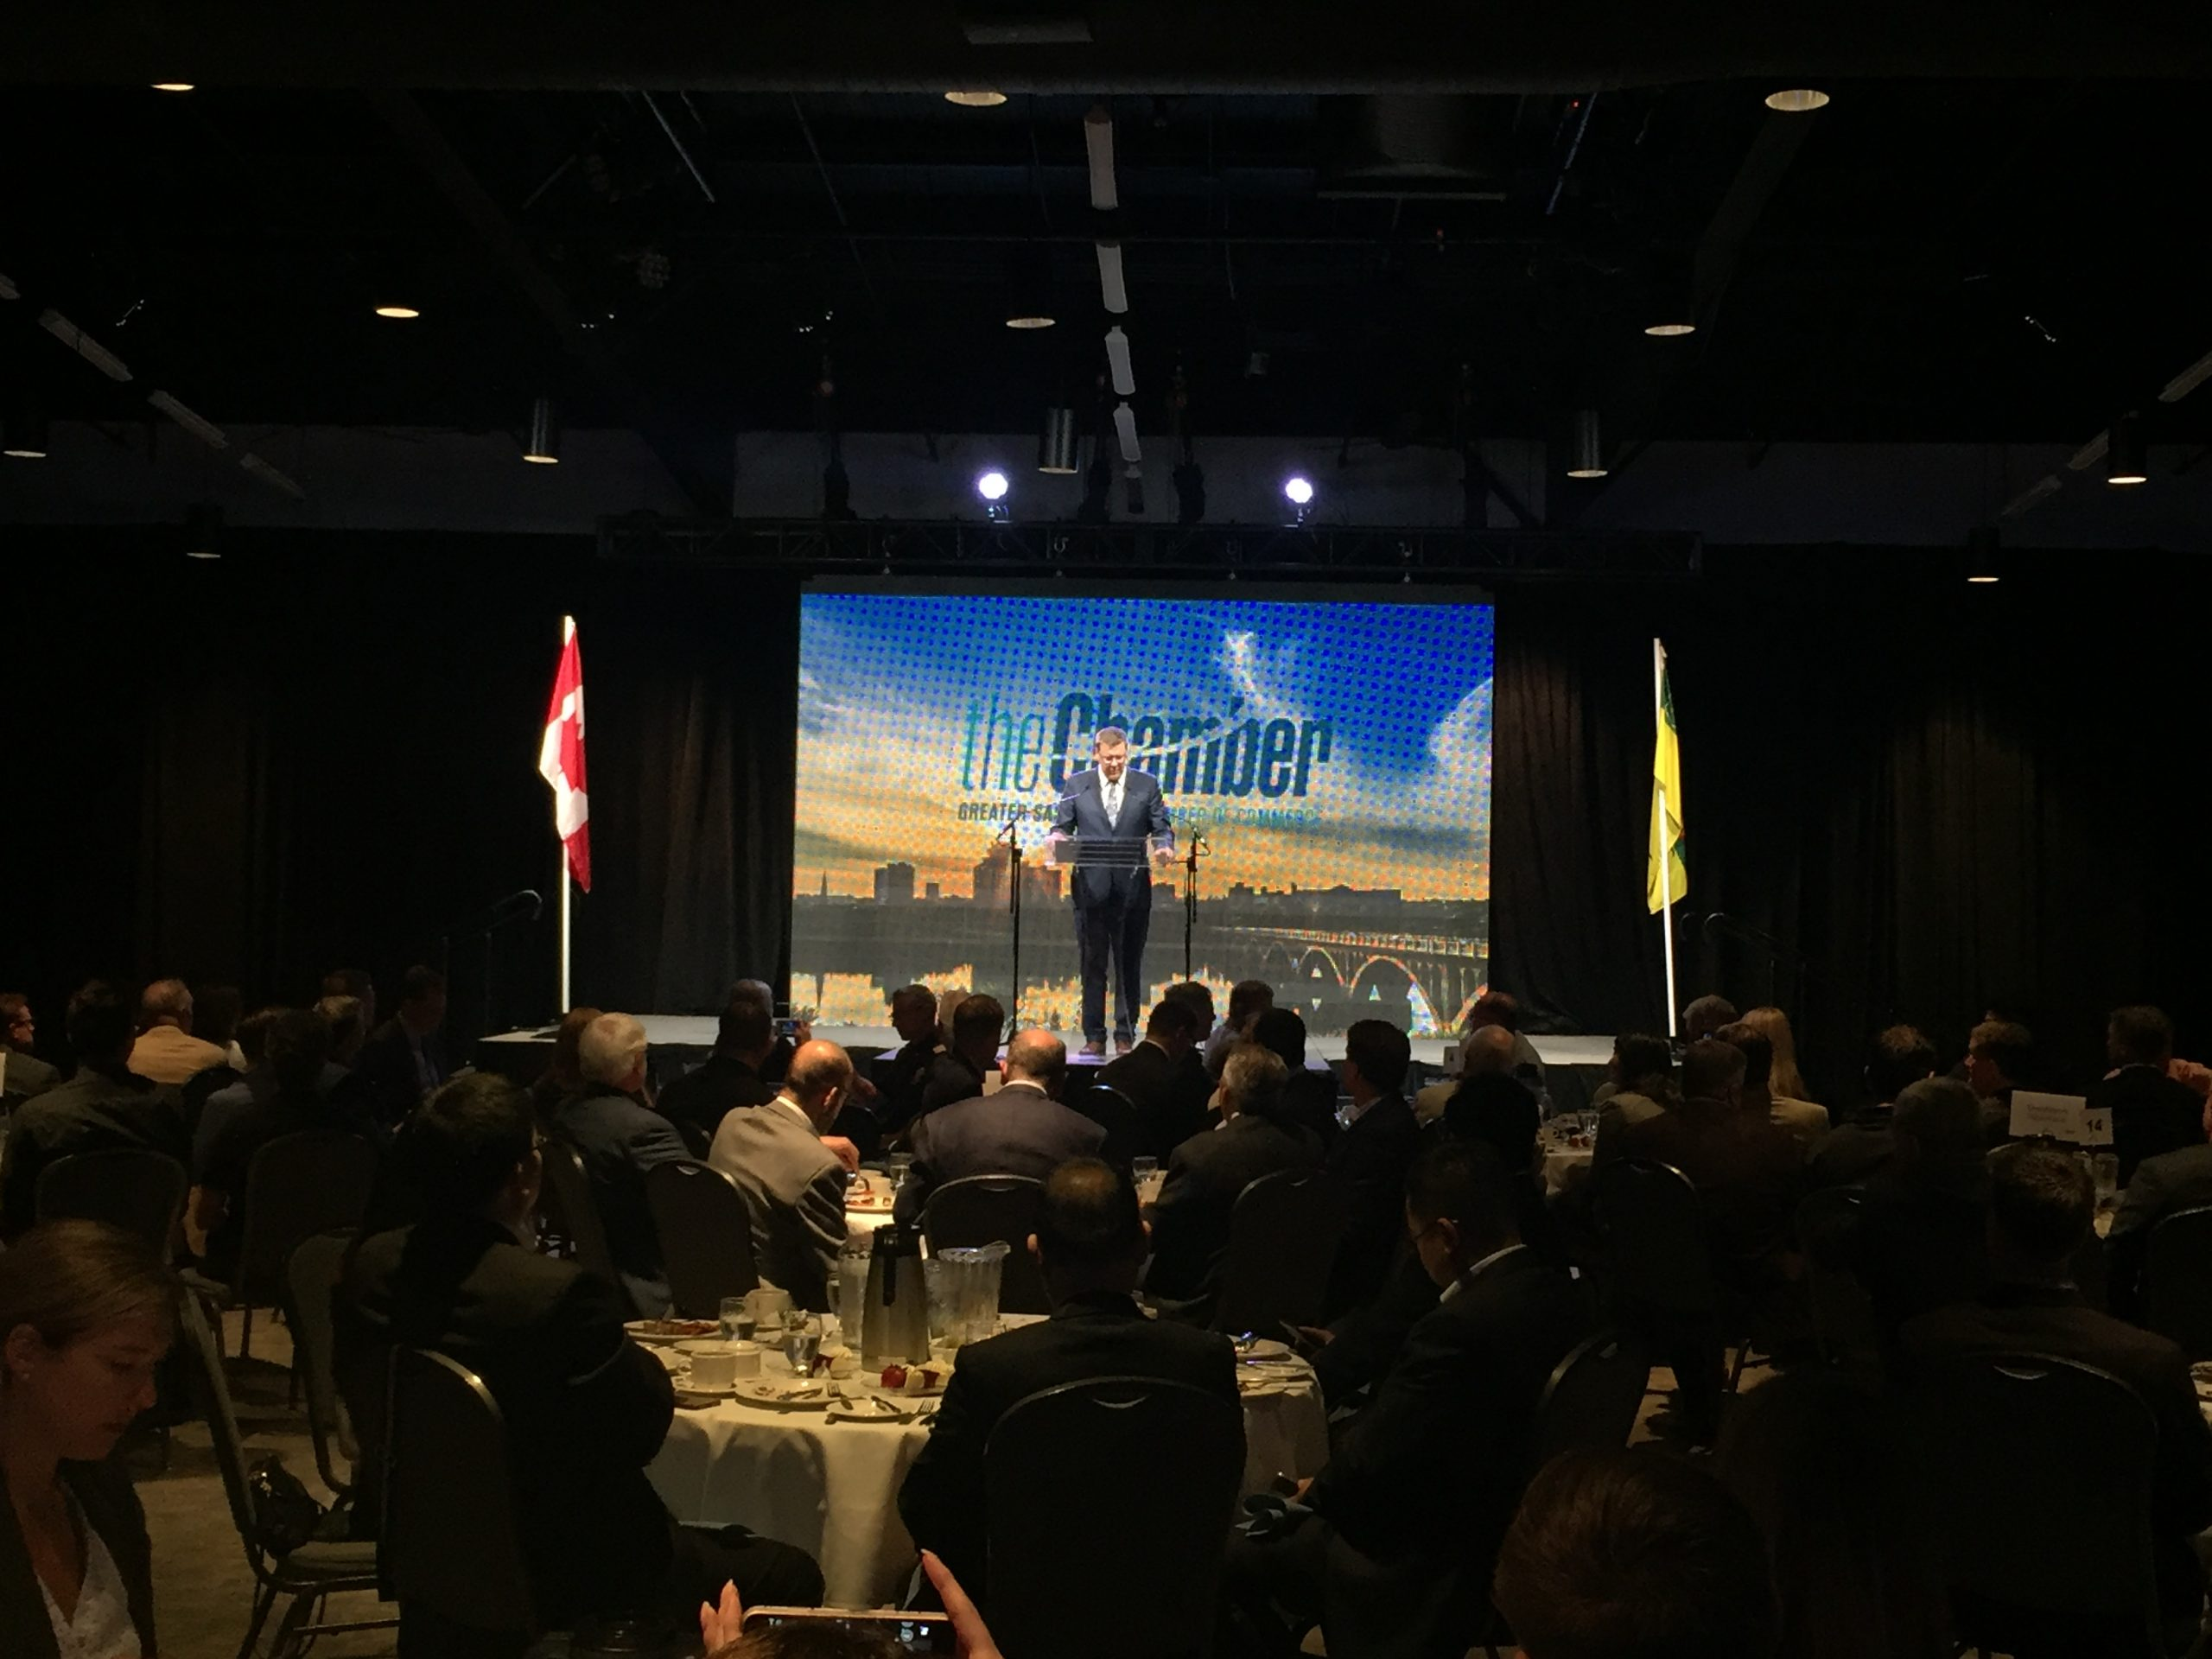 Premier's Speech Focused on Battling the Federal Carbon Tax